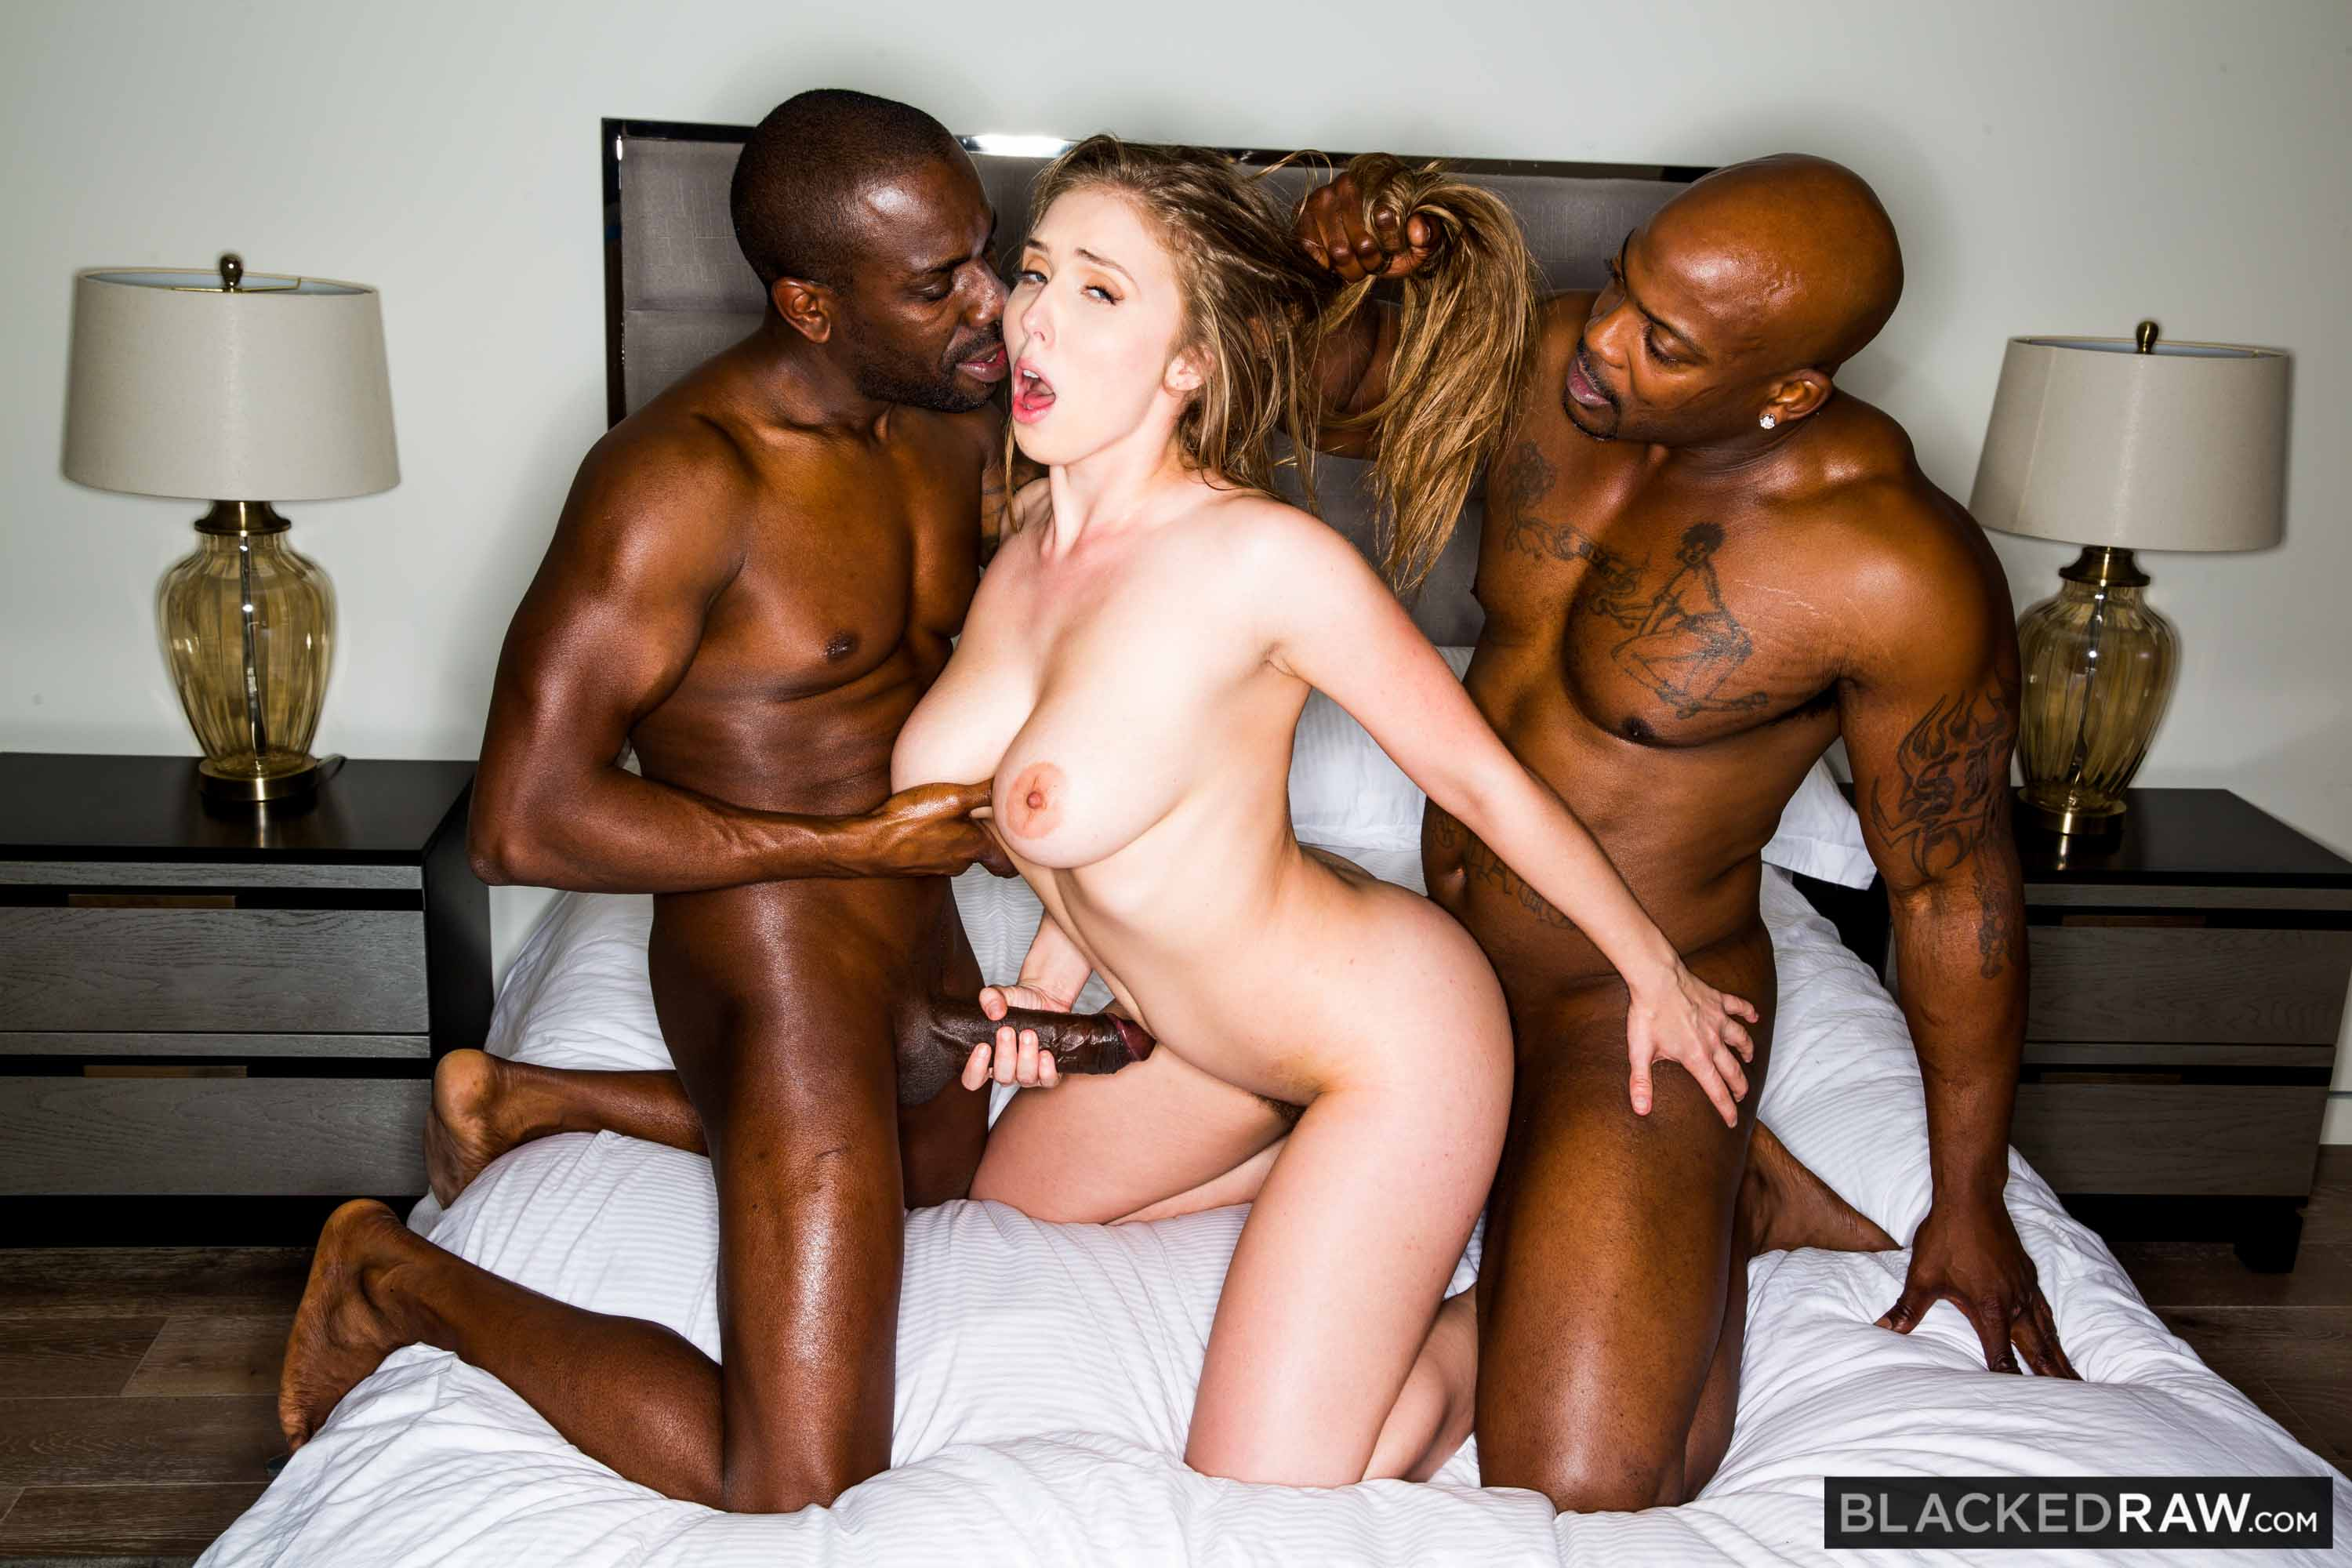 Pictures of interracial models